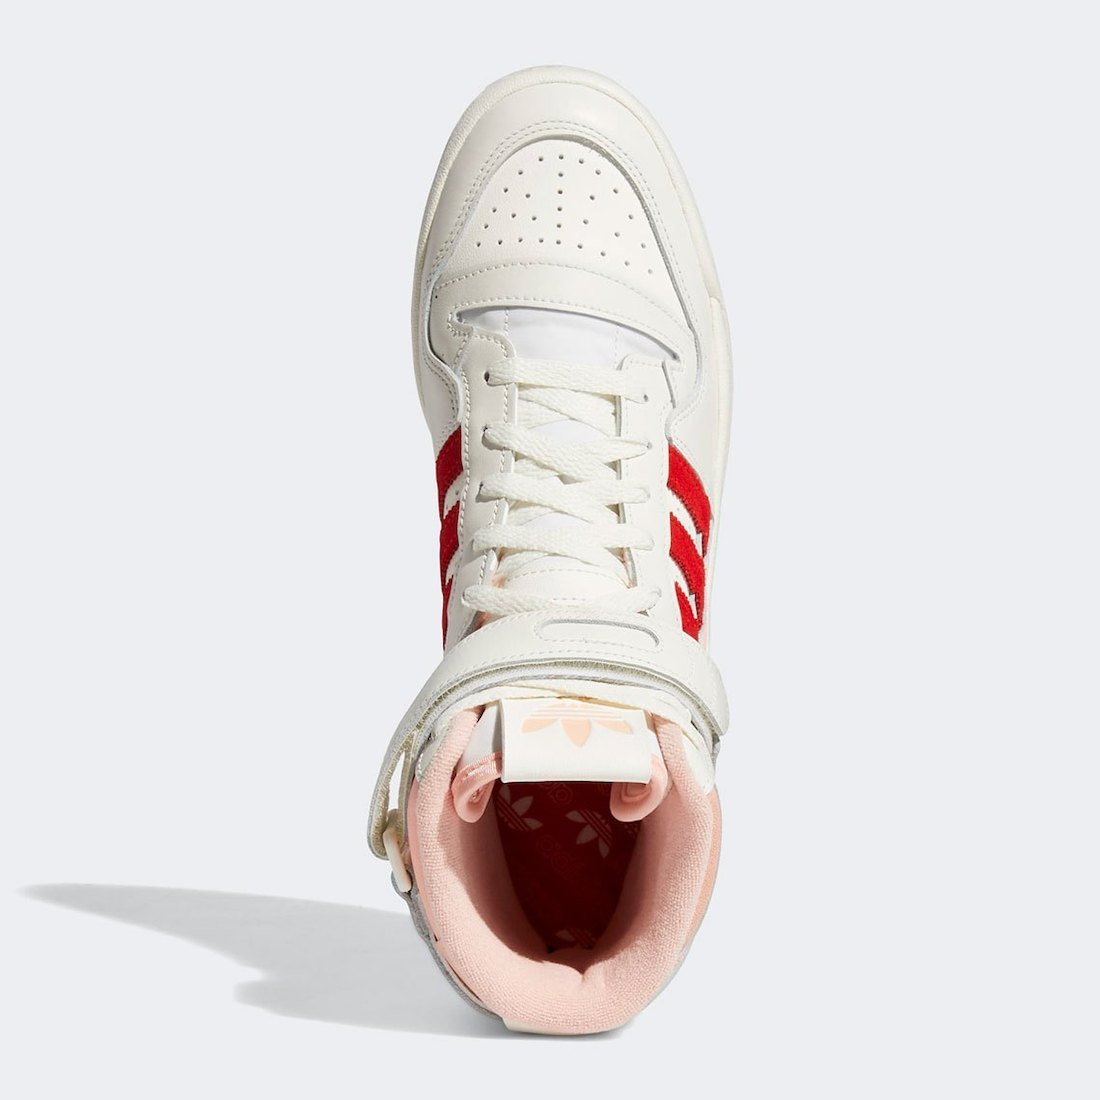 adidas Forum 84 High Pink Glow Vivid Red H01670 Release Date Info